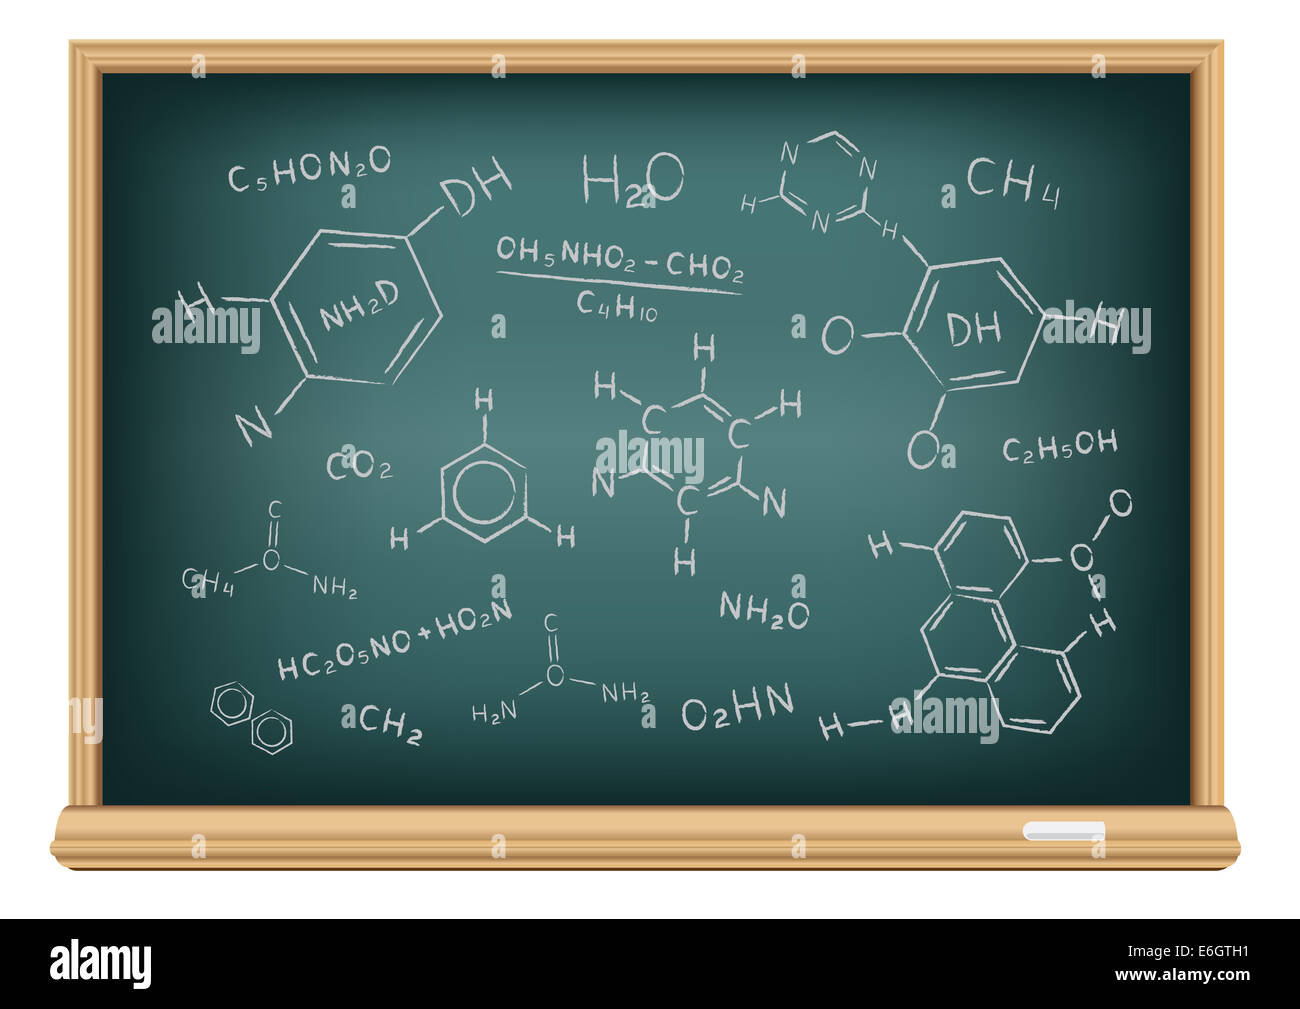 The school blackboard and chalk drawn chemical formula - Stock Image